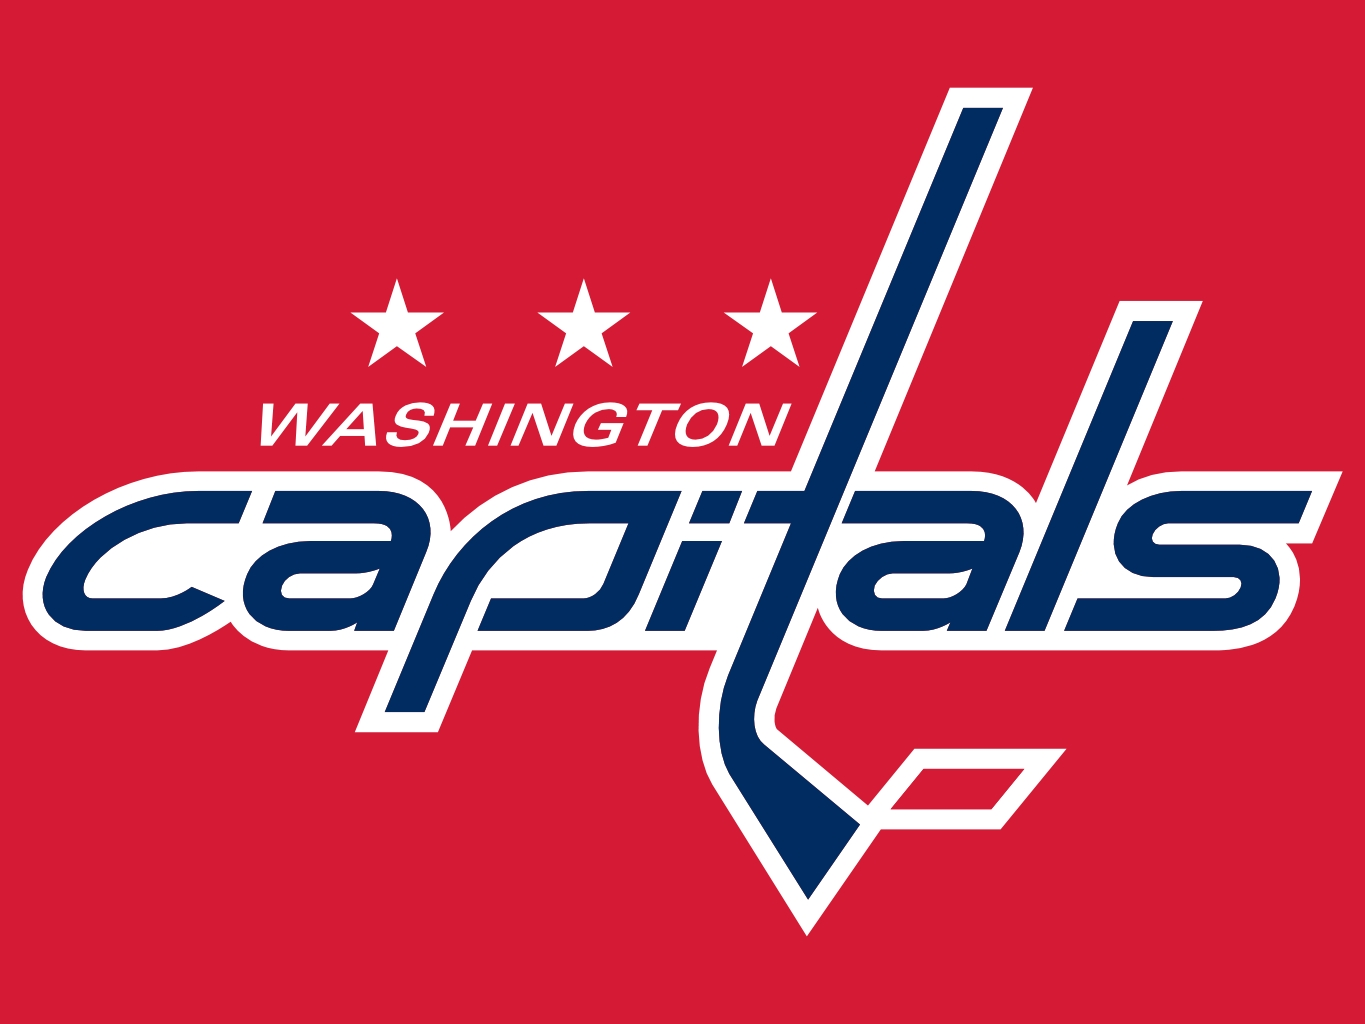 WASHINGTON CAPITALS 2013 WHAT TO WATCH FOR - steveospeak